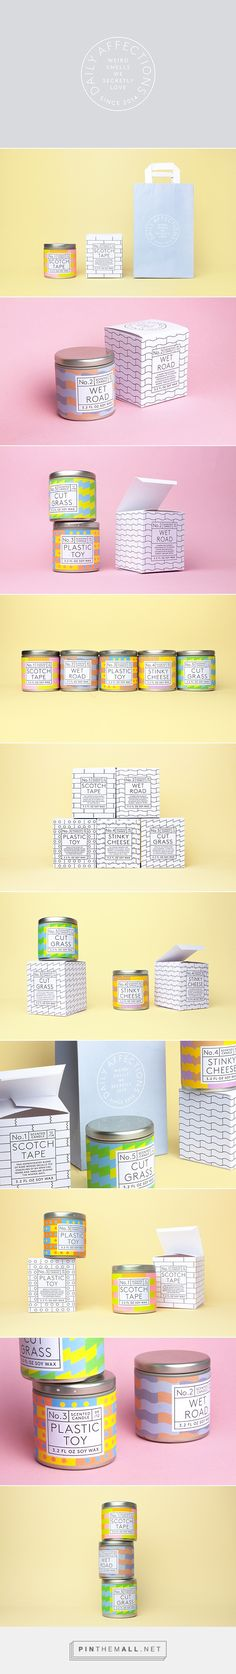 Daily Affections - Weird Smells We Actually Love. Candle #packaging design.